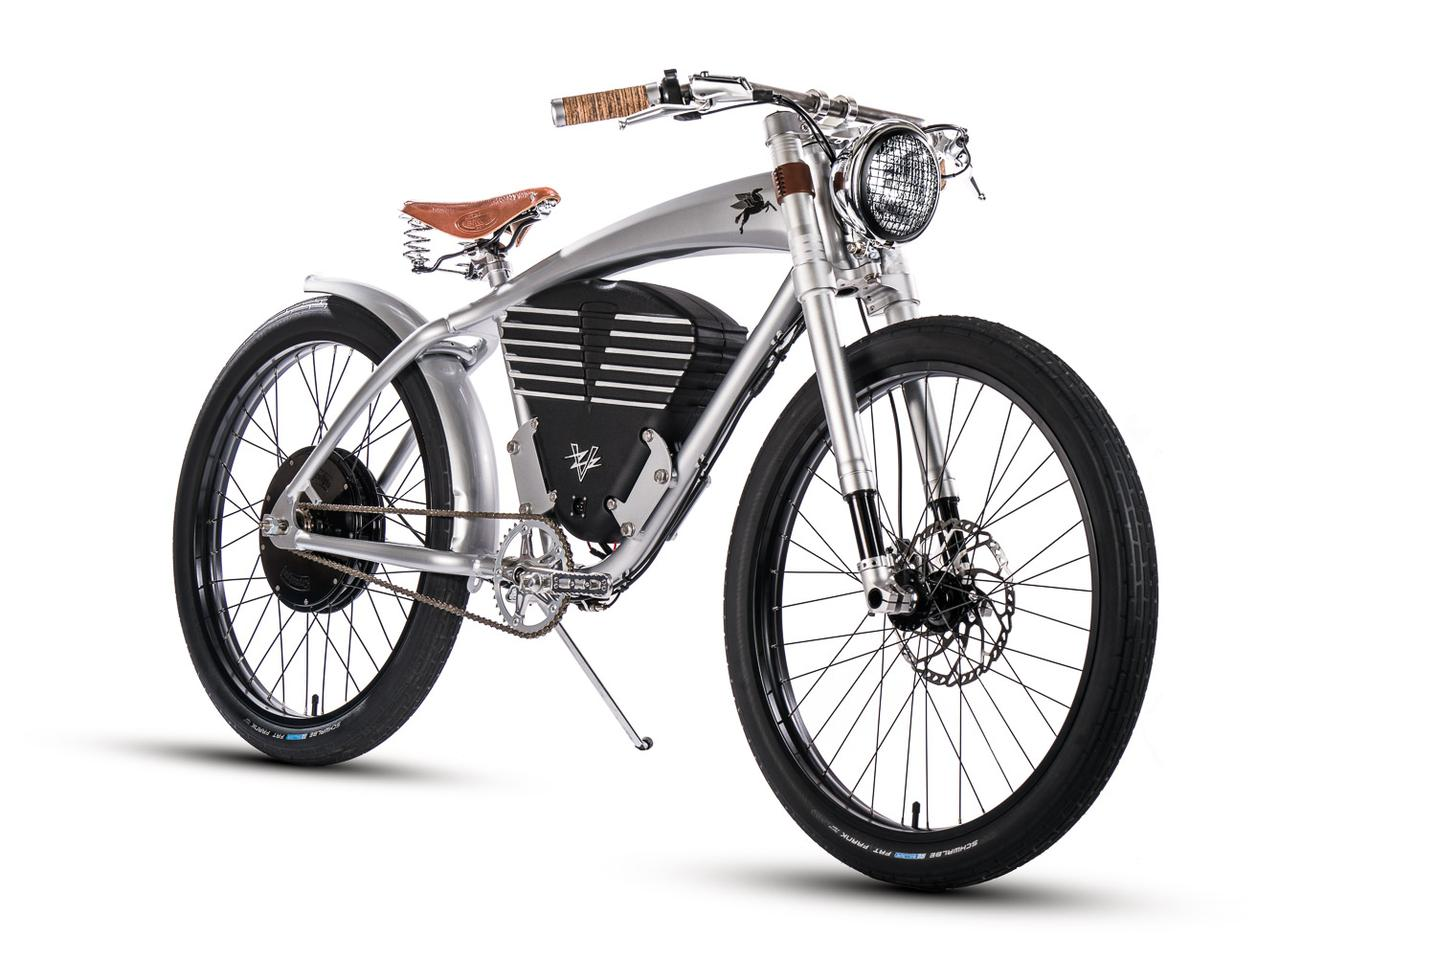 The Tracker Outlaw has an aluminum frame